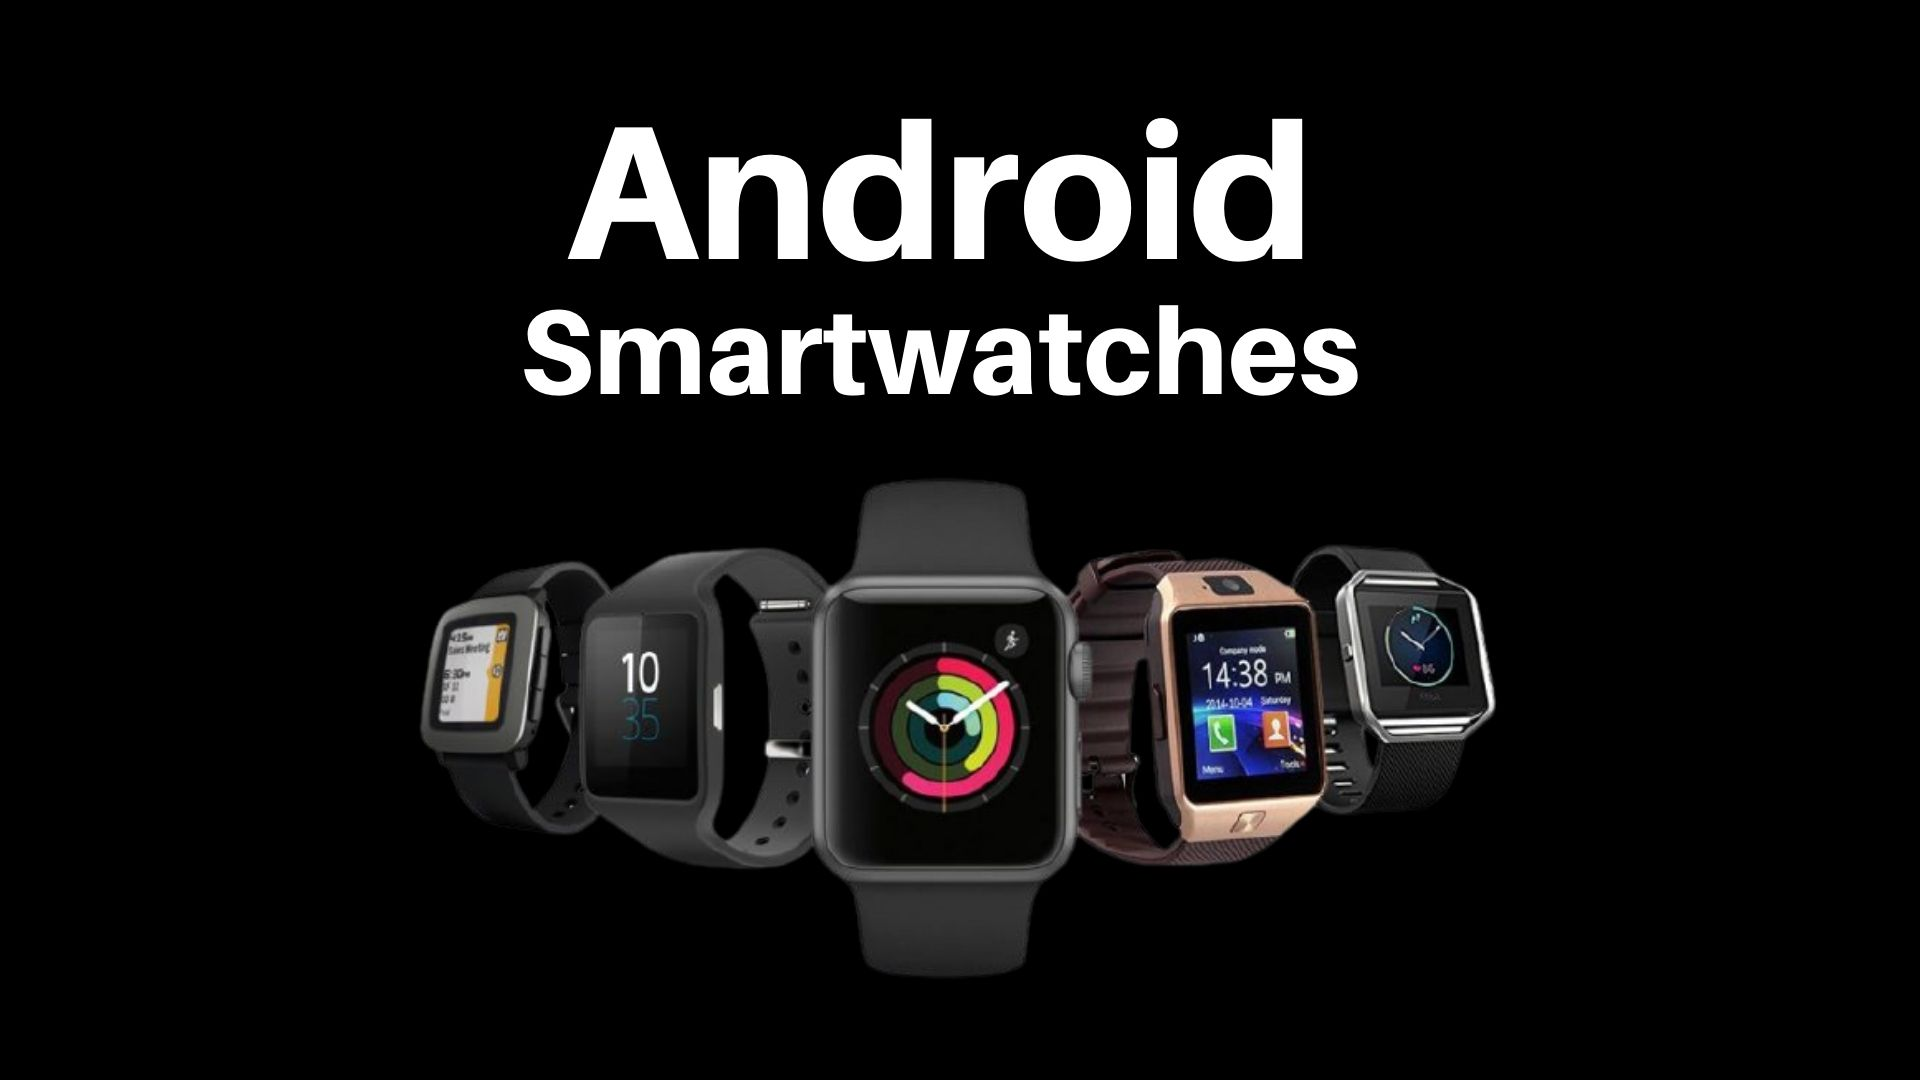 Android Smartwatches